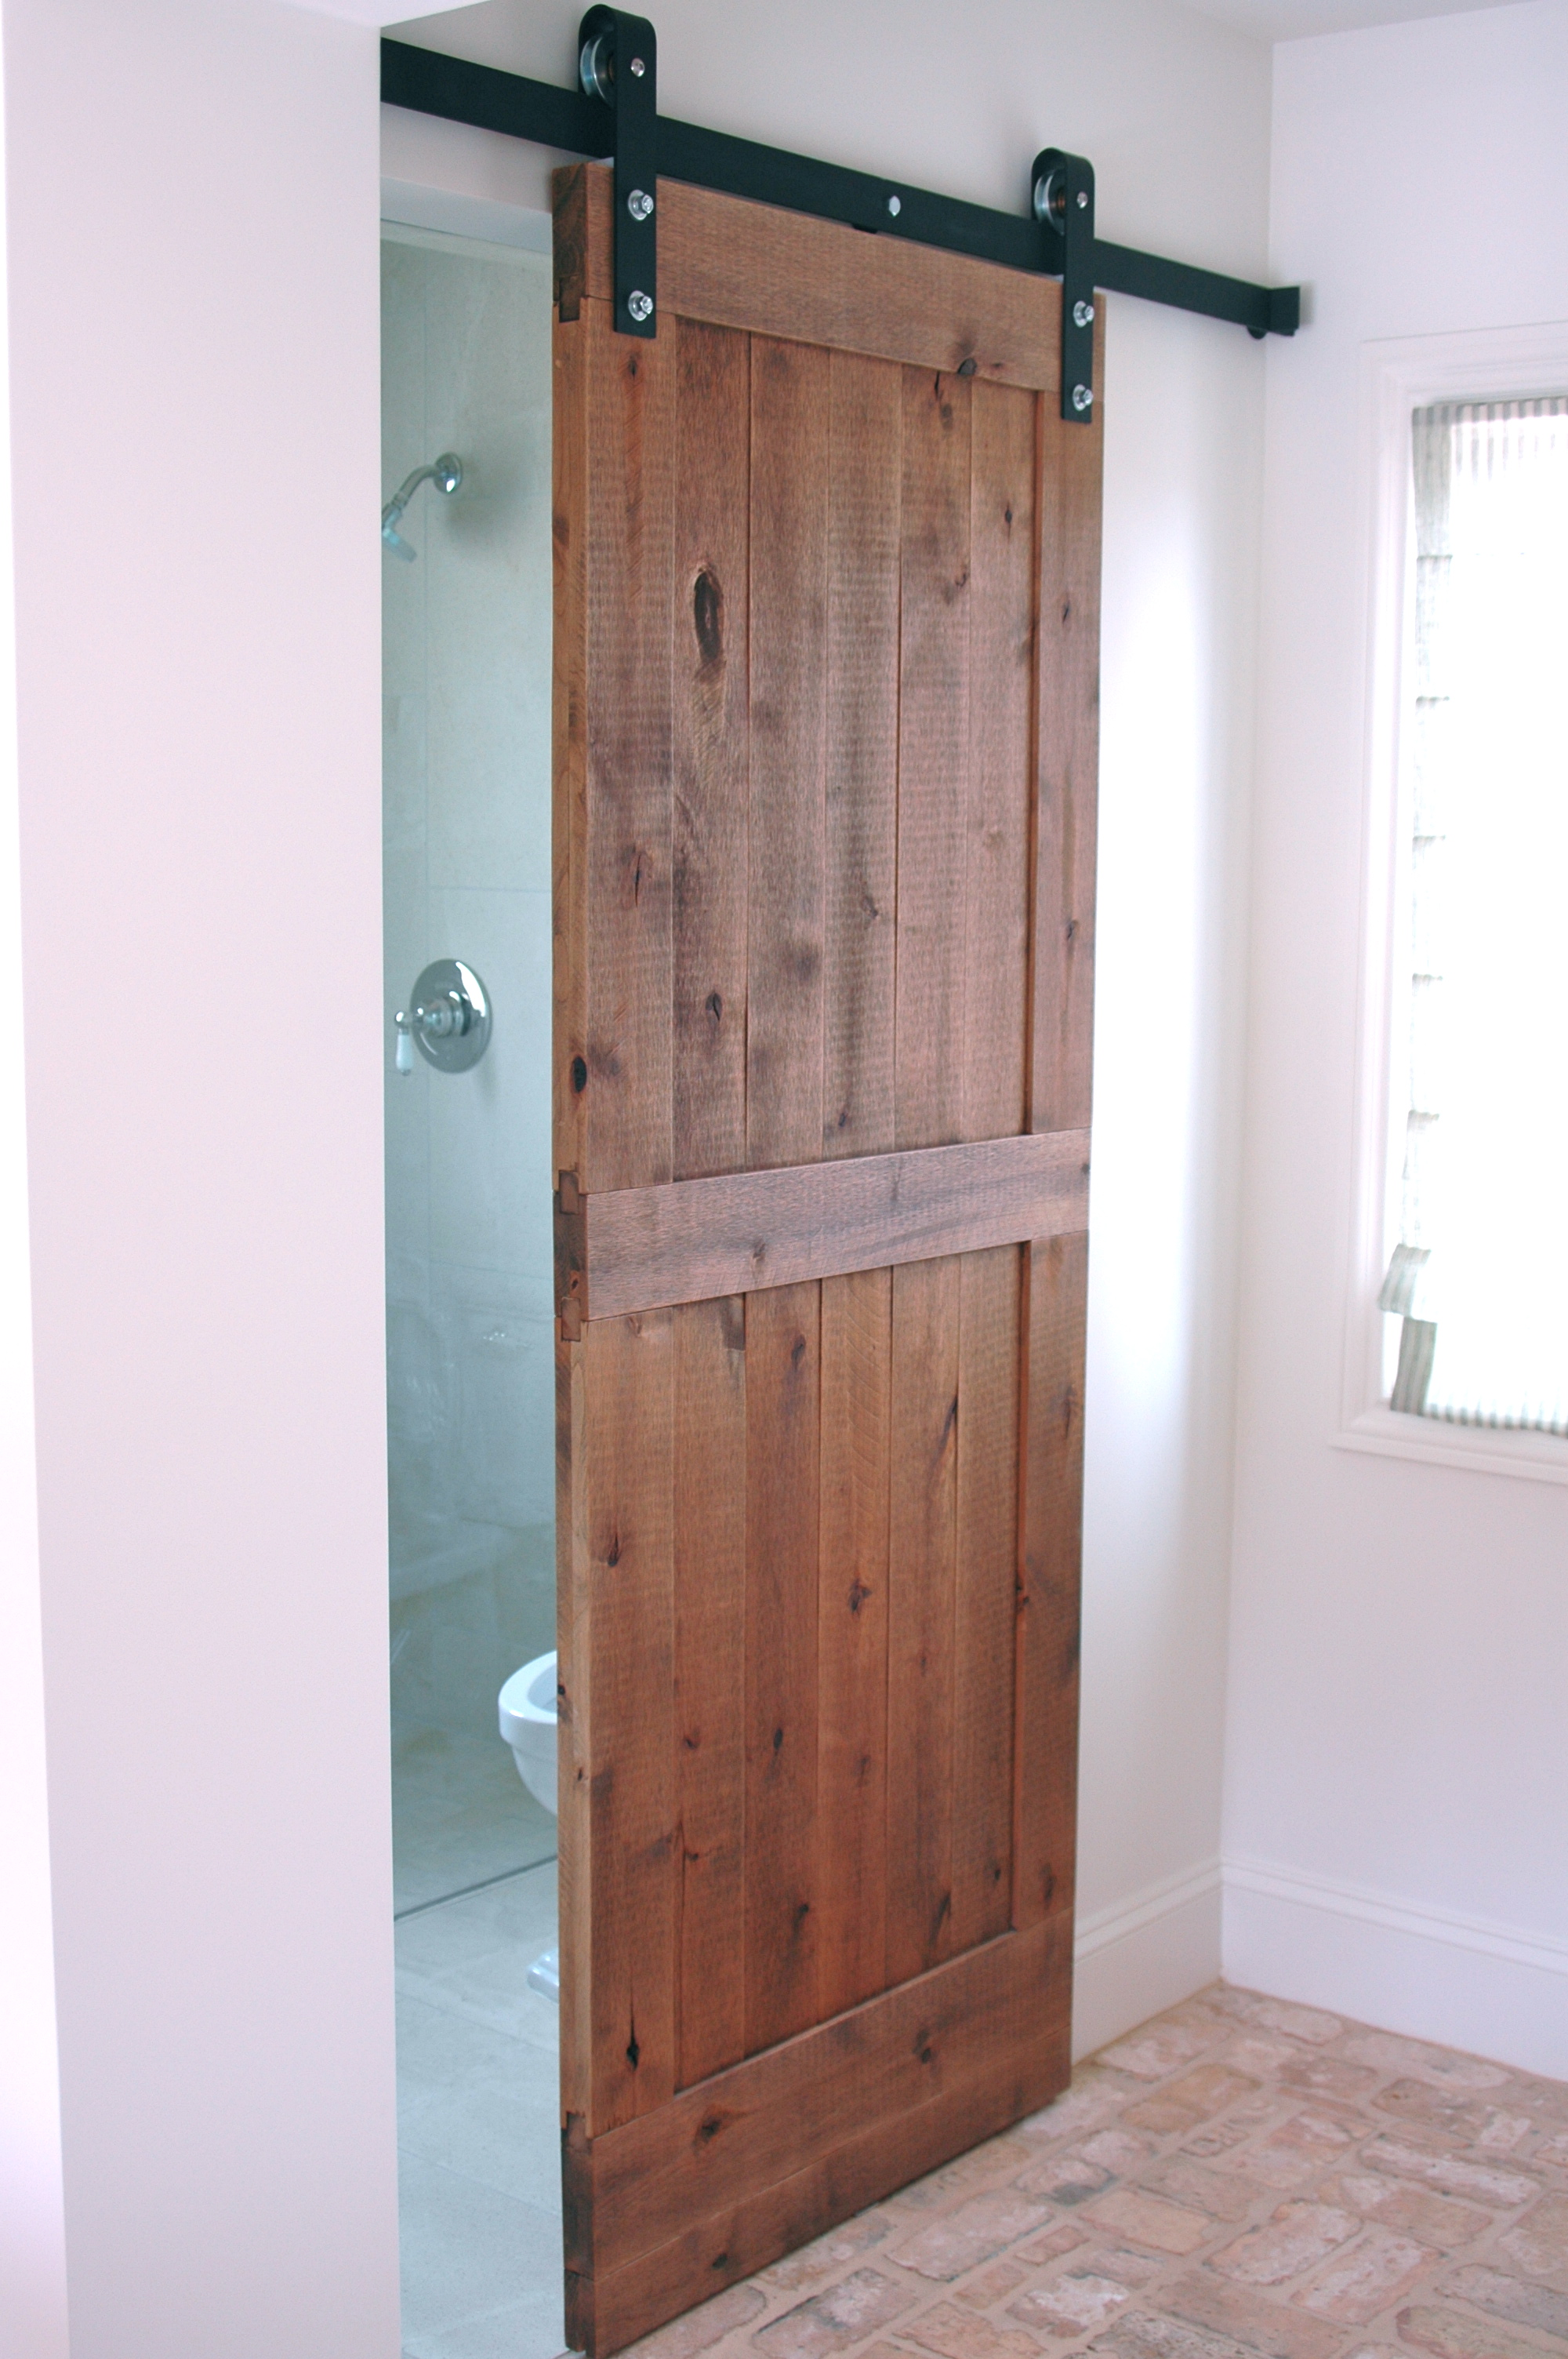 Barn door, barn door hardware, barn door in bath, barn door in house, custom barn door,